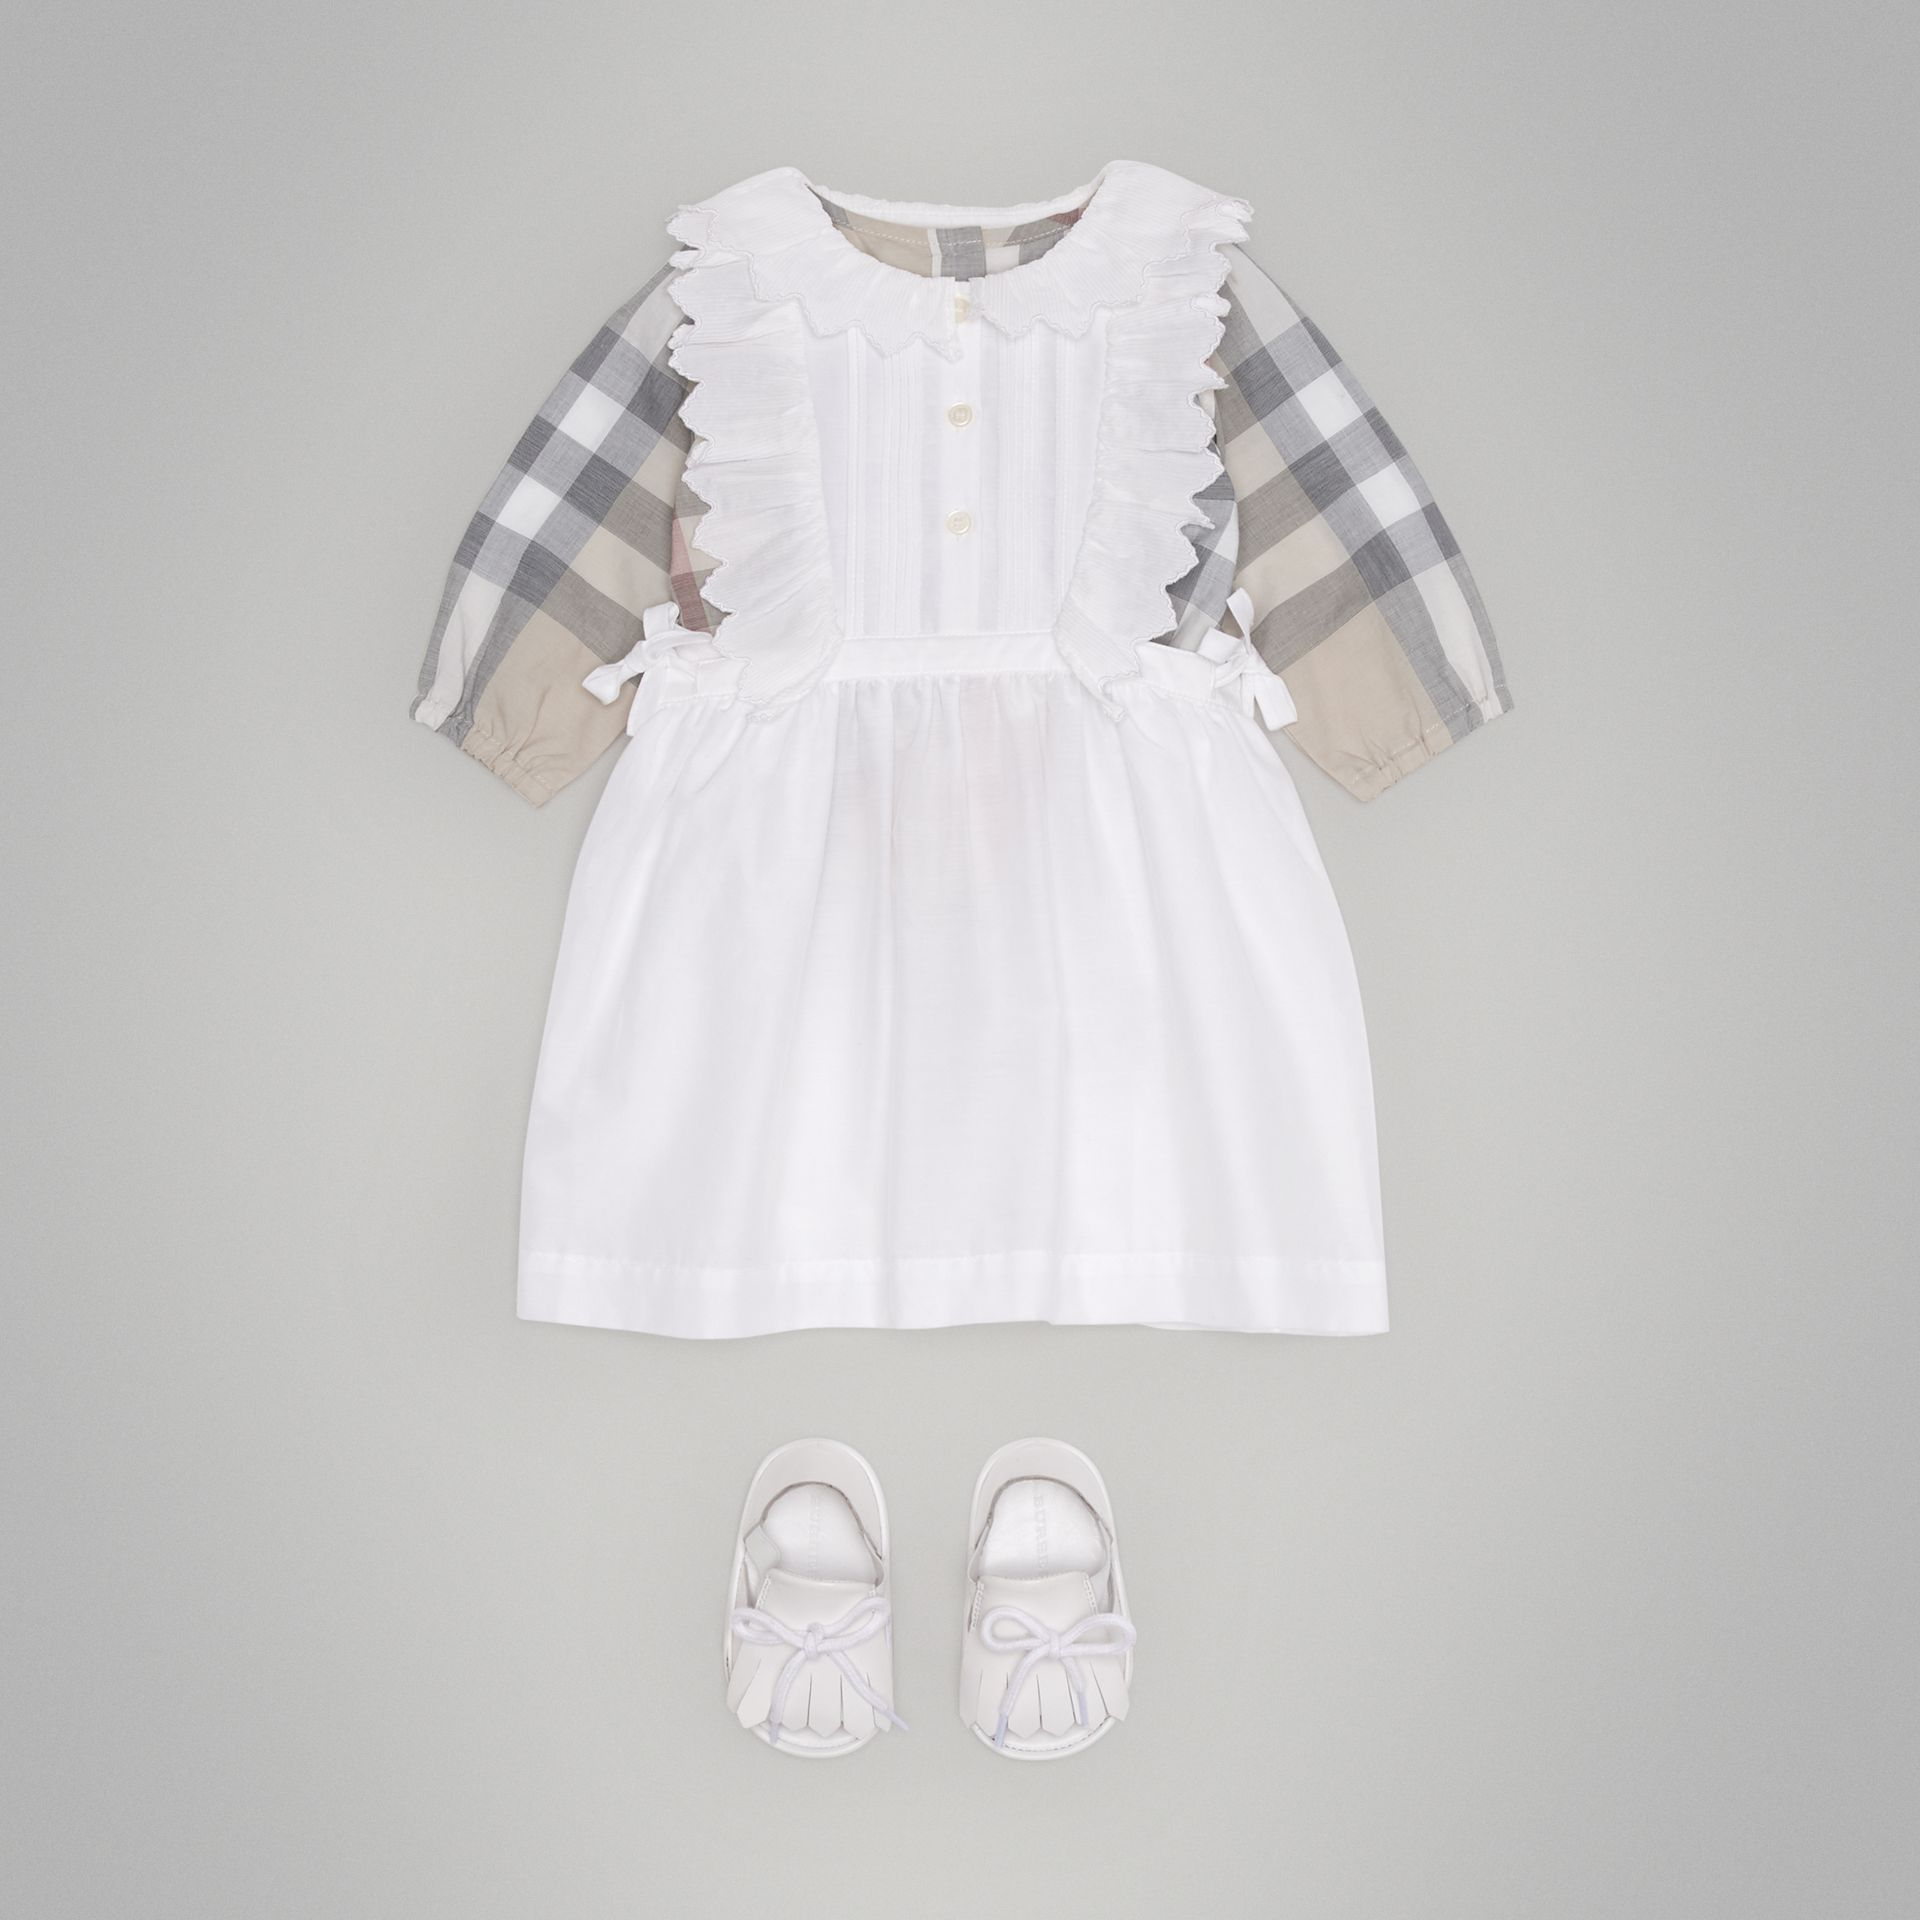 Scalloped Plissé Detail Cotton Shirt Dress in White - Children | Burberry Singapore - gallery image 2